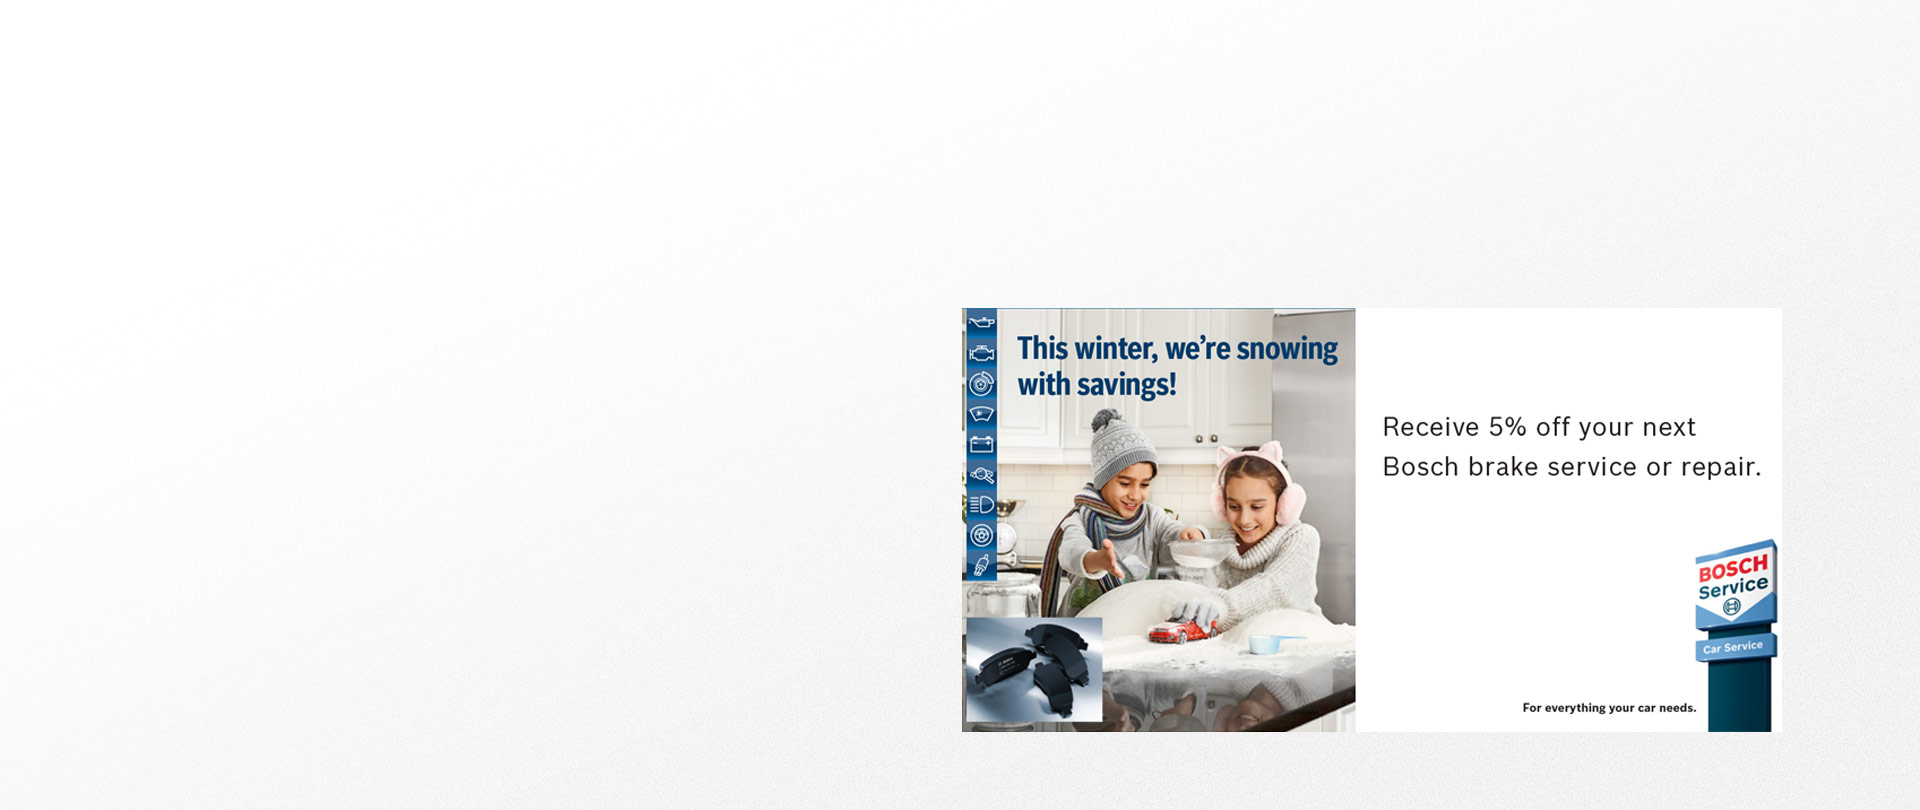 BOSCH  5% off your next Service or Repair